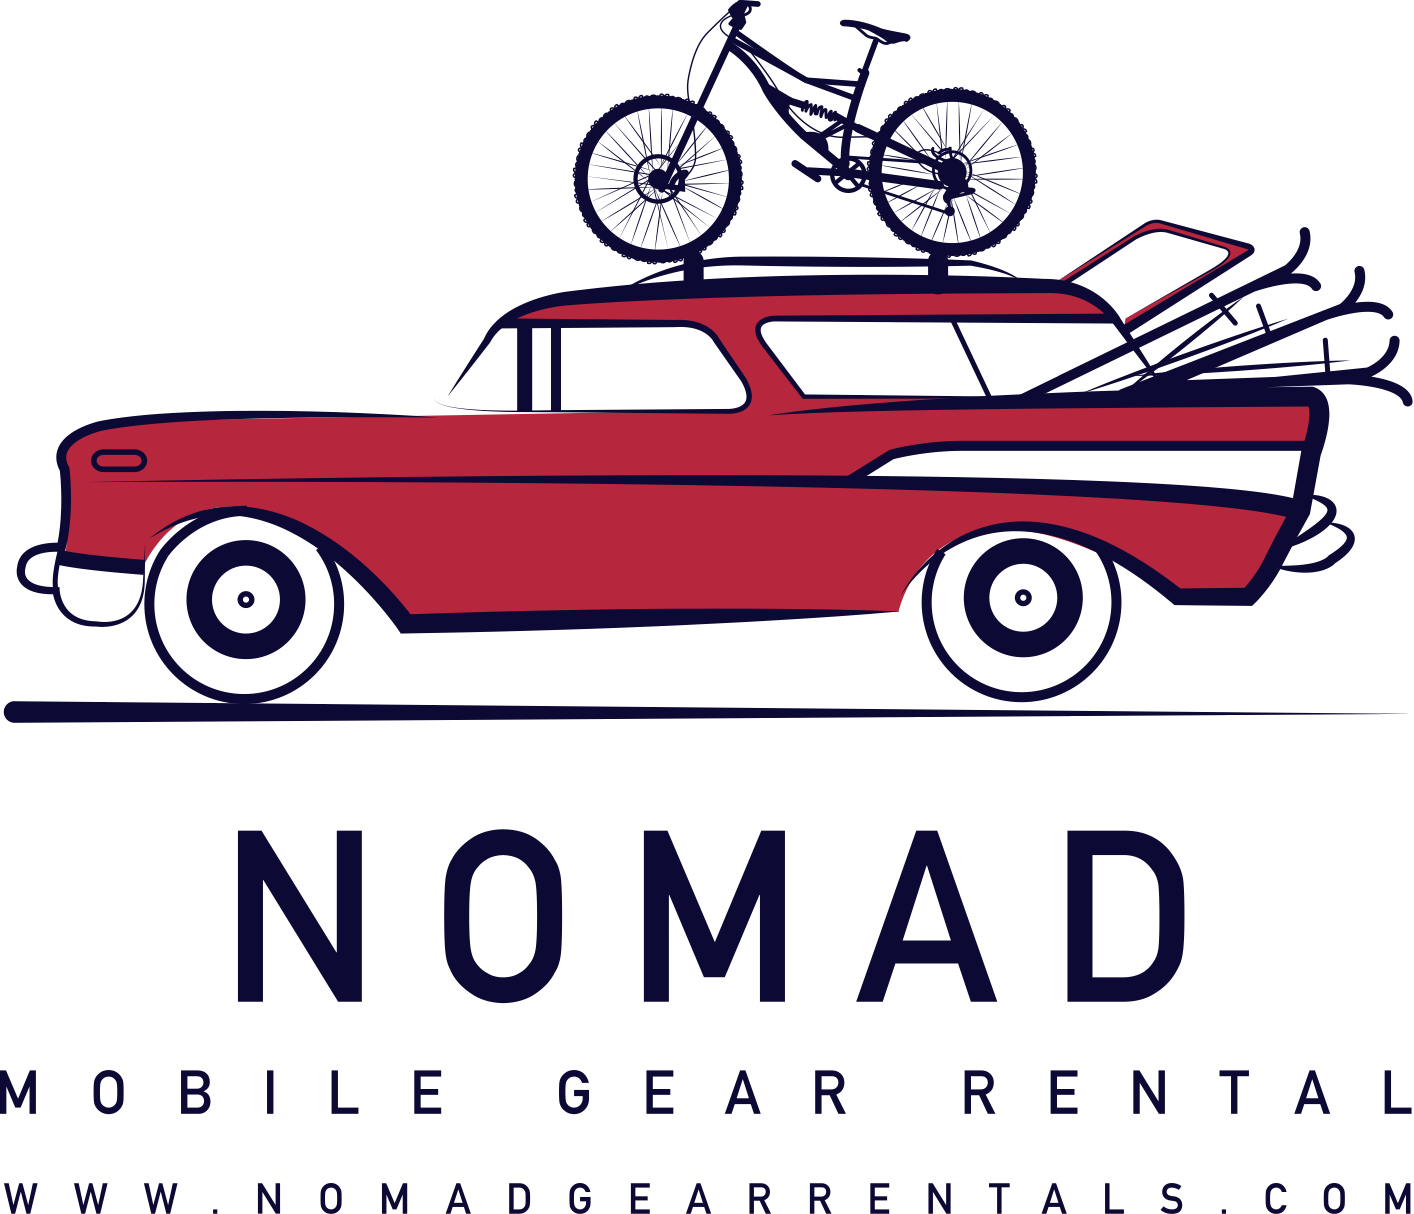 Your source for gear rentals this winter